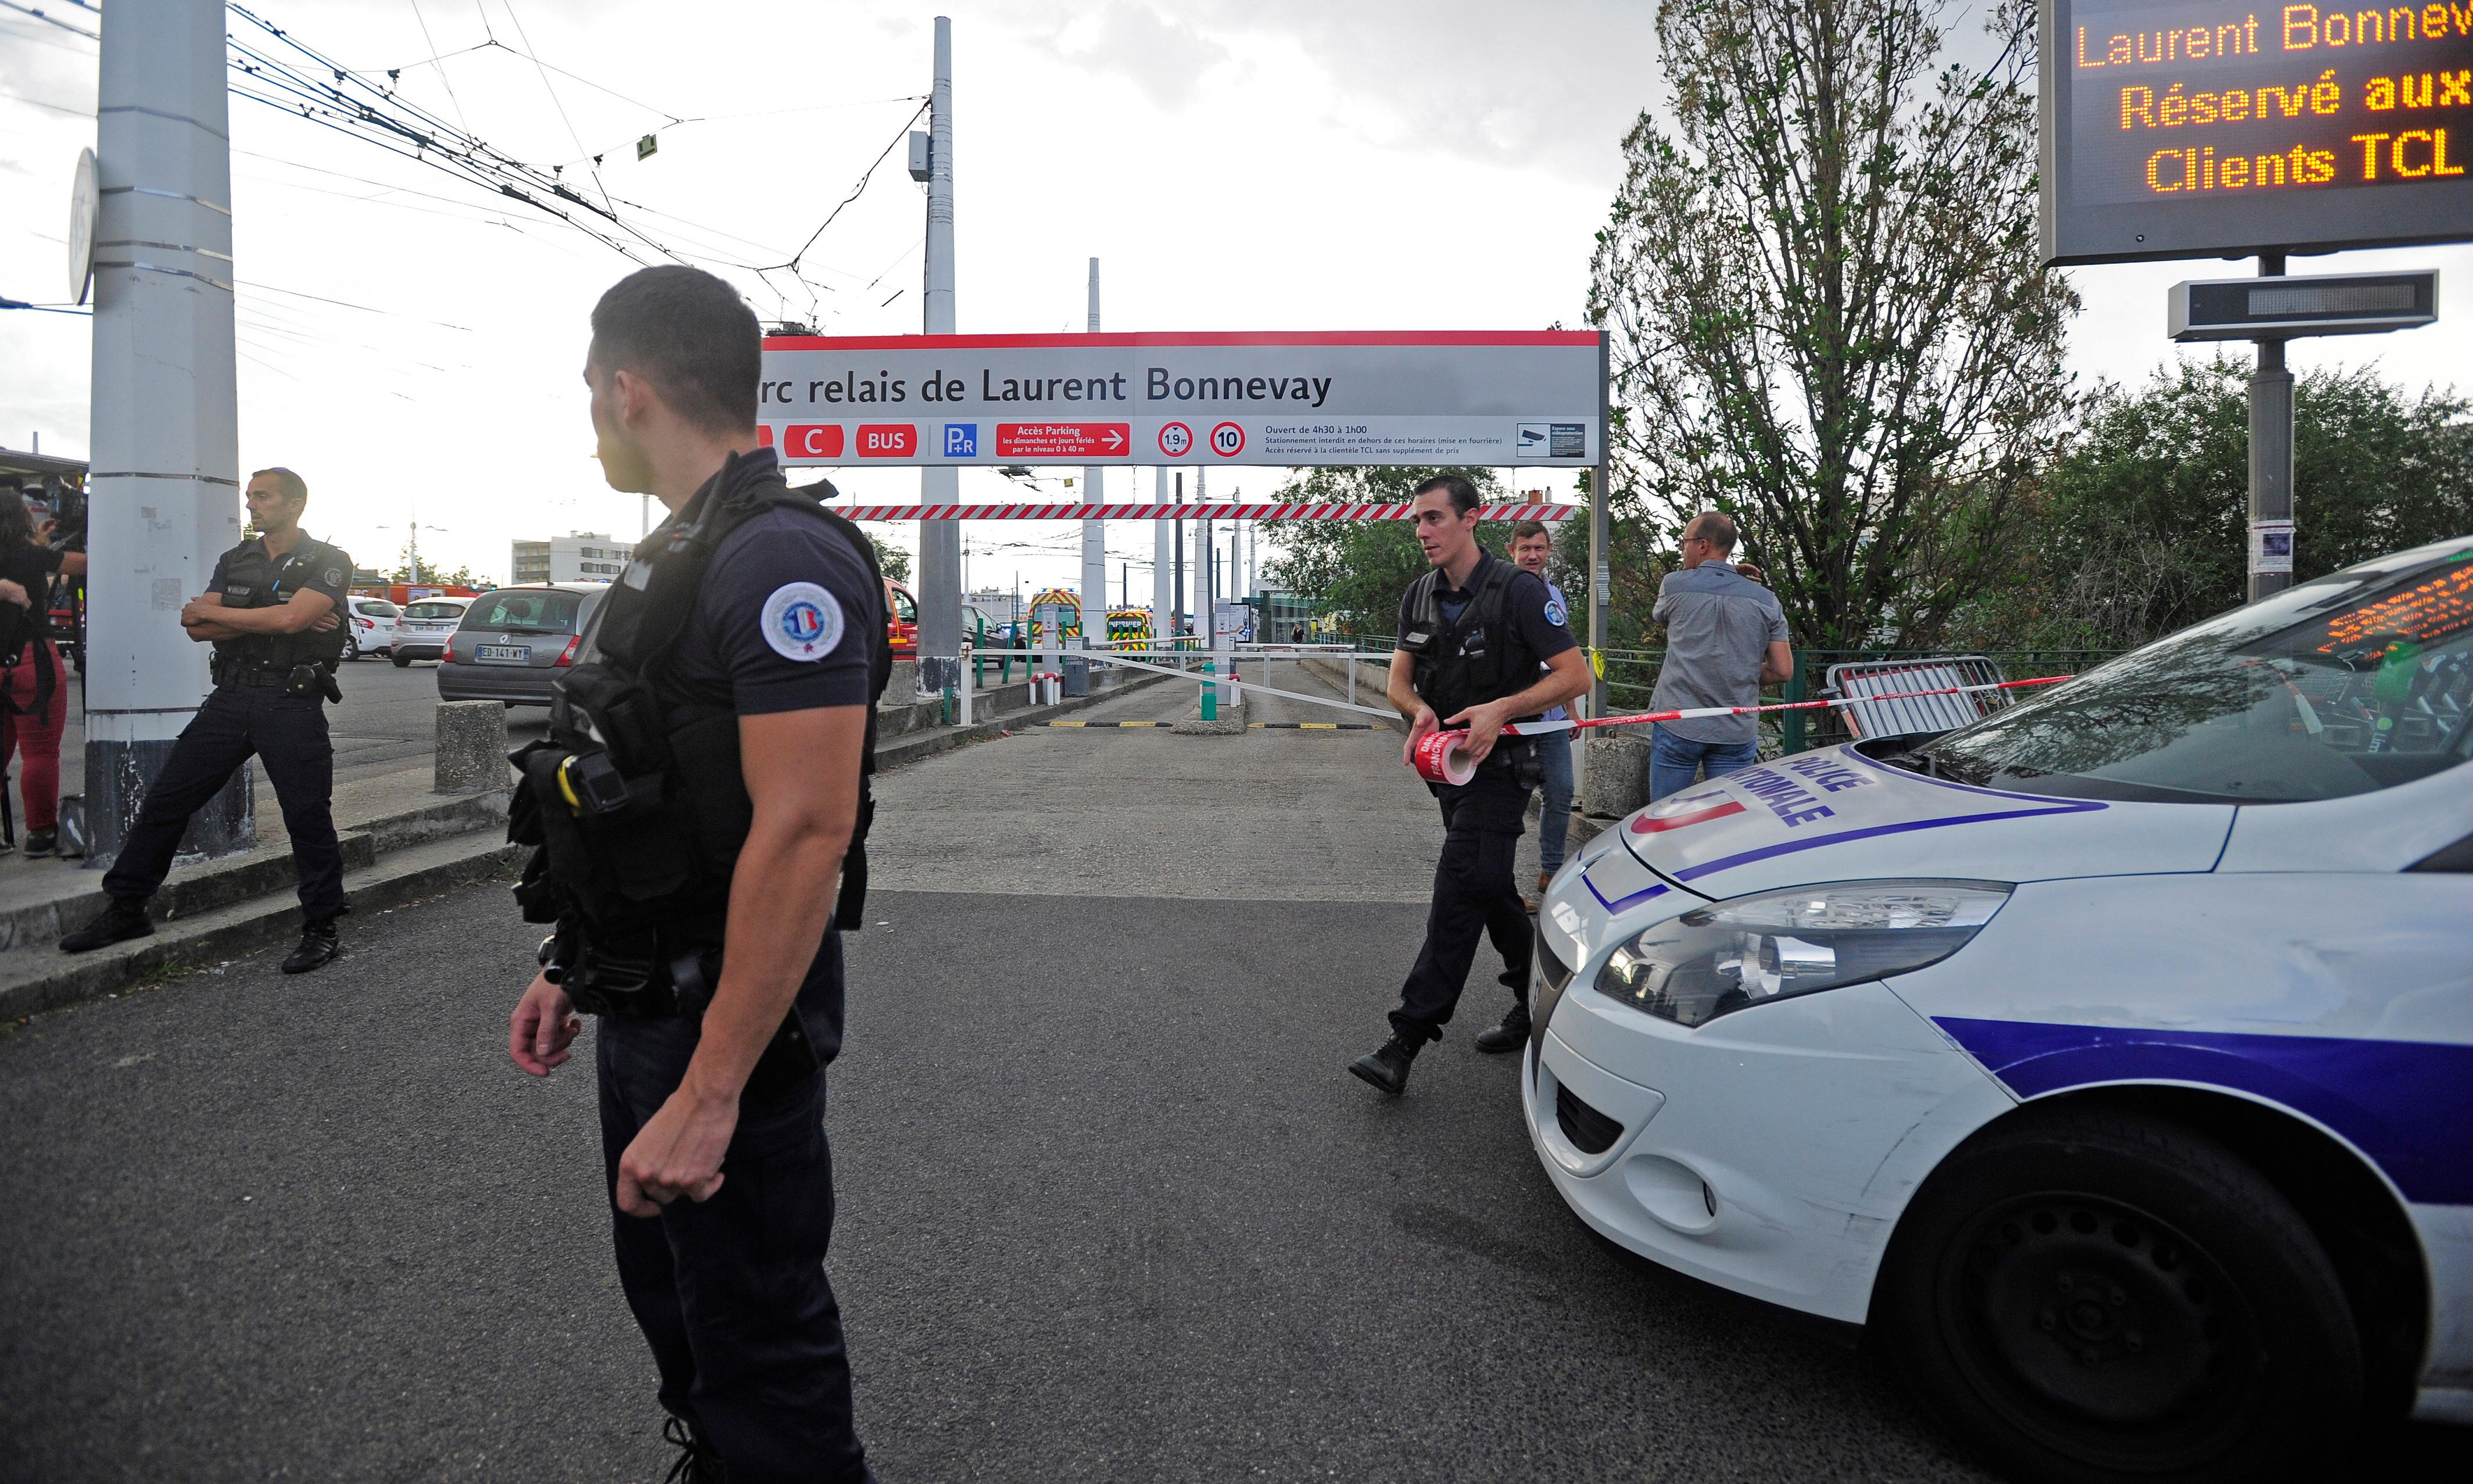 One dead and eight wounded after suspected knife attack in France